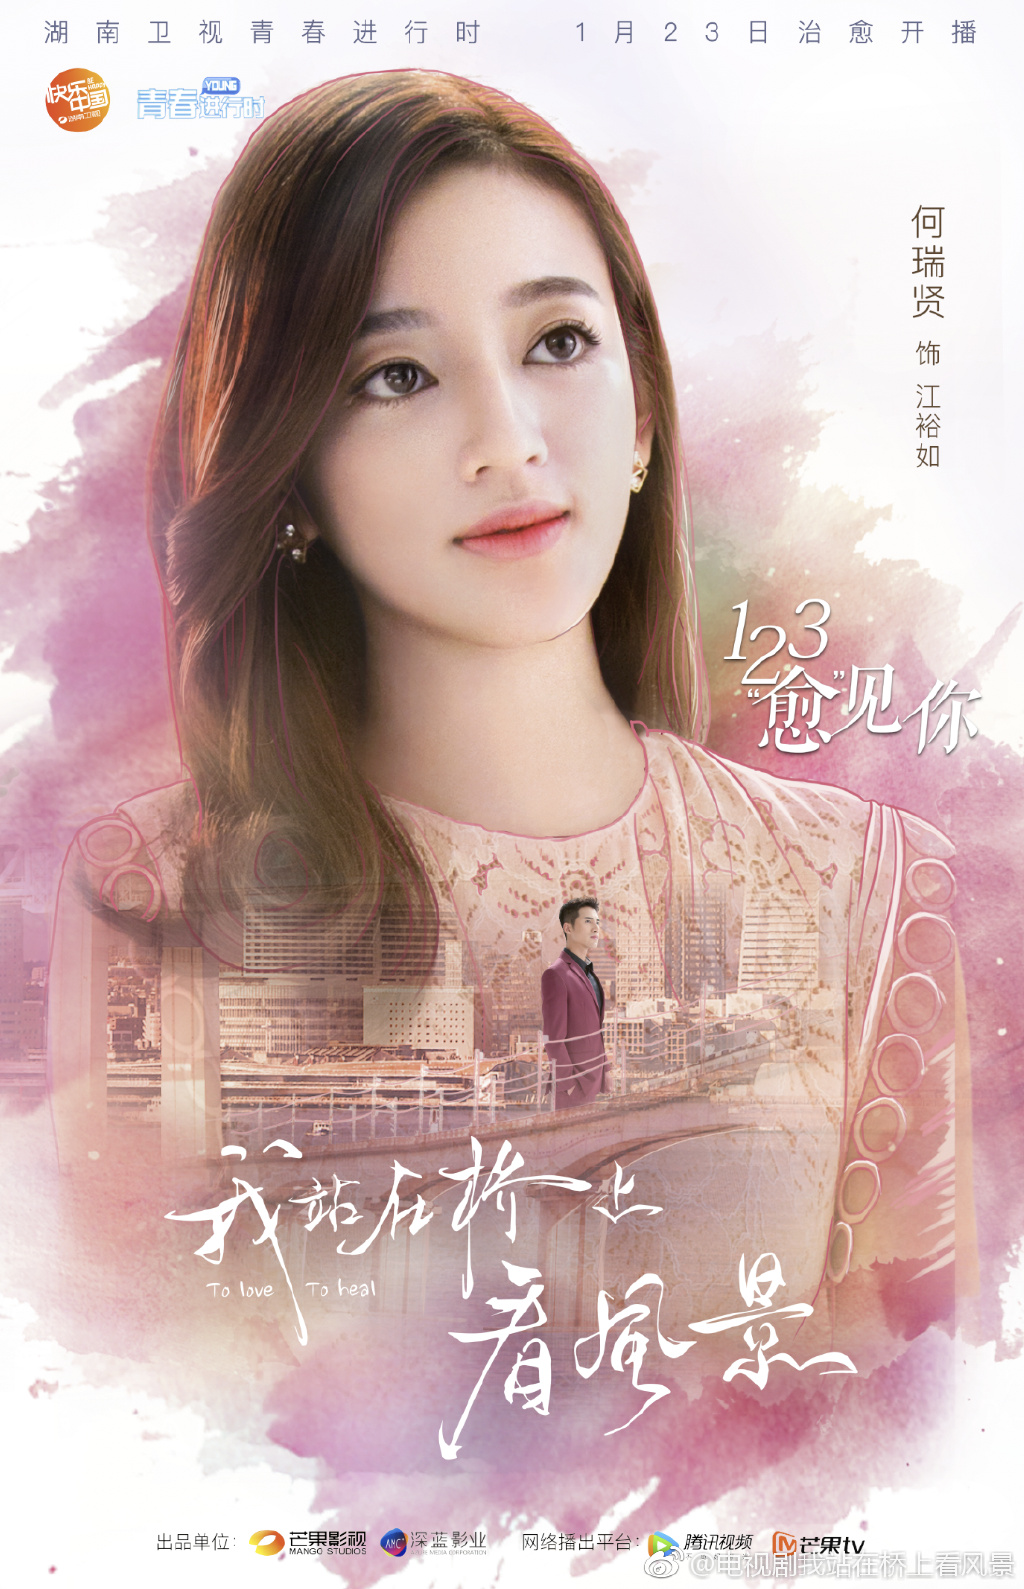 4Udrama to love to heal chinese drama